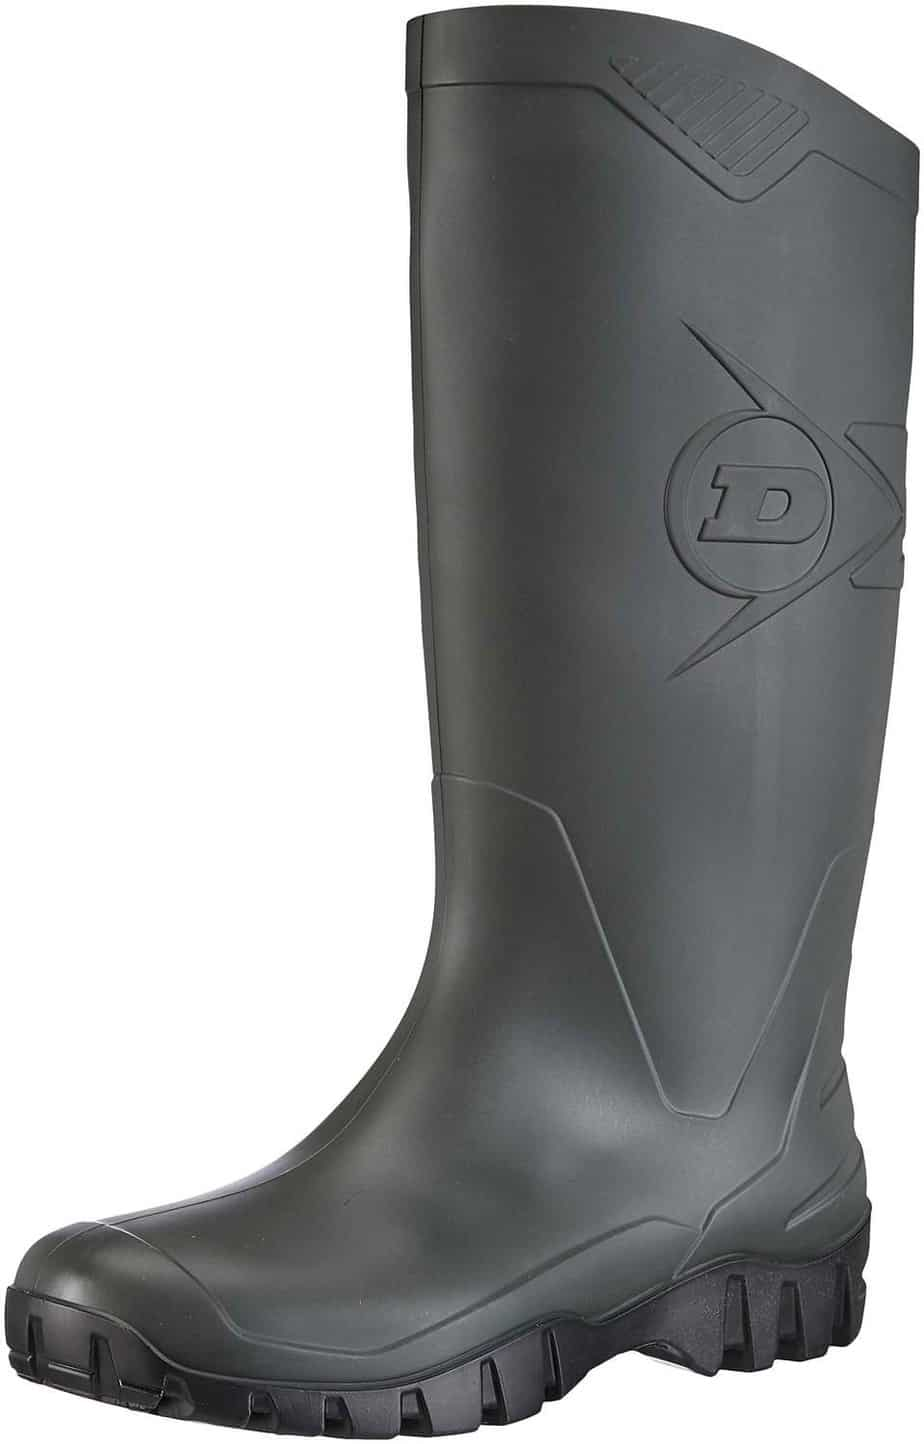 Dunlop Unisex Adults' K580011 PVC KUITLAARS Unlined Rubber Boots Half Shaft Boots & Bootees